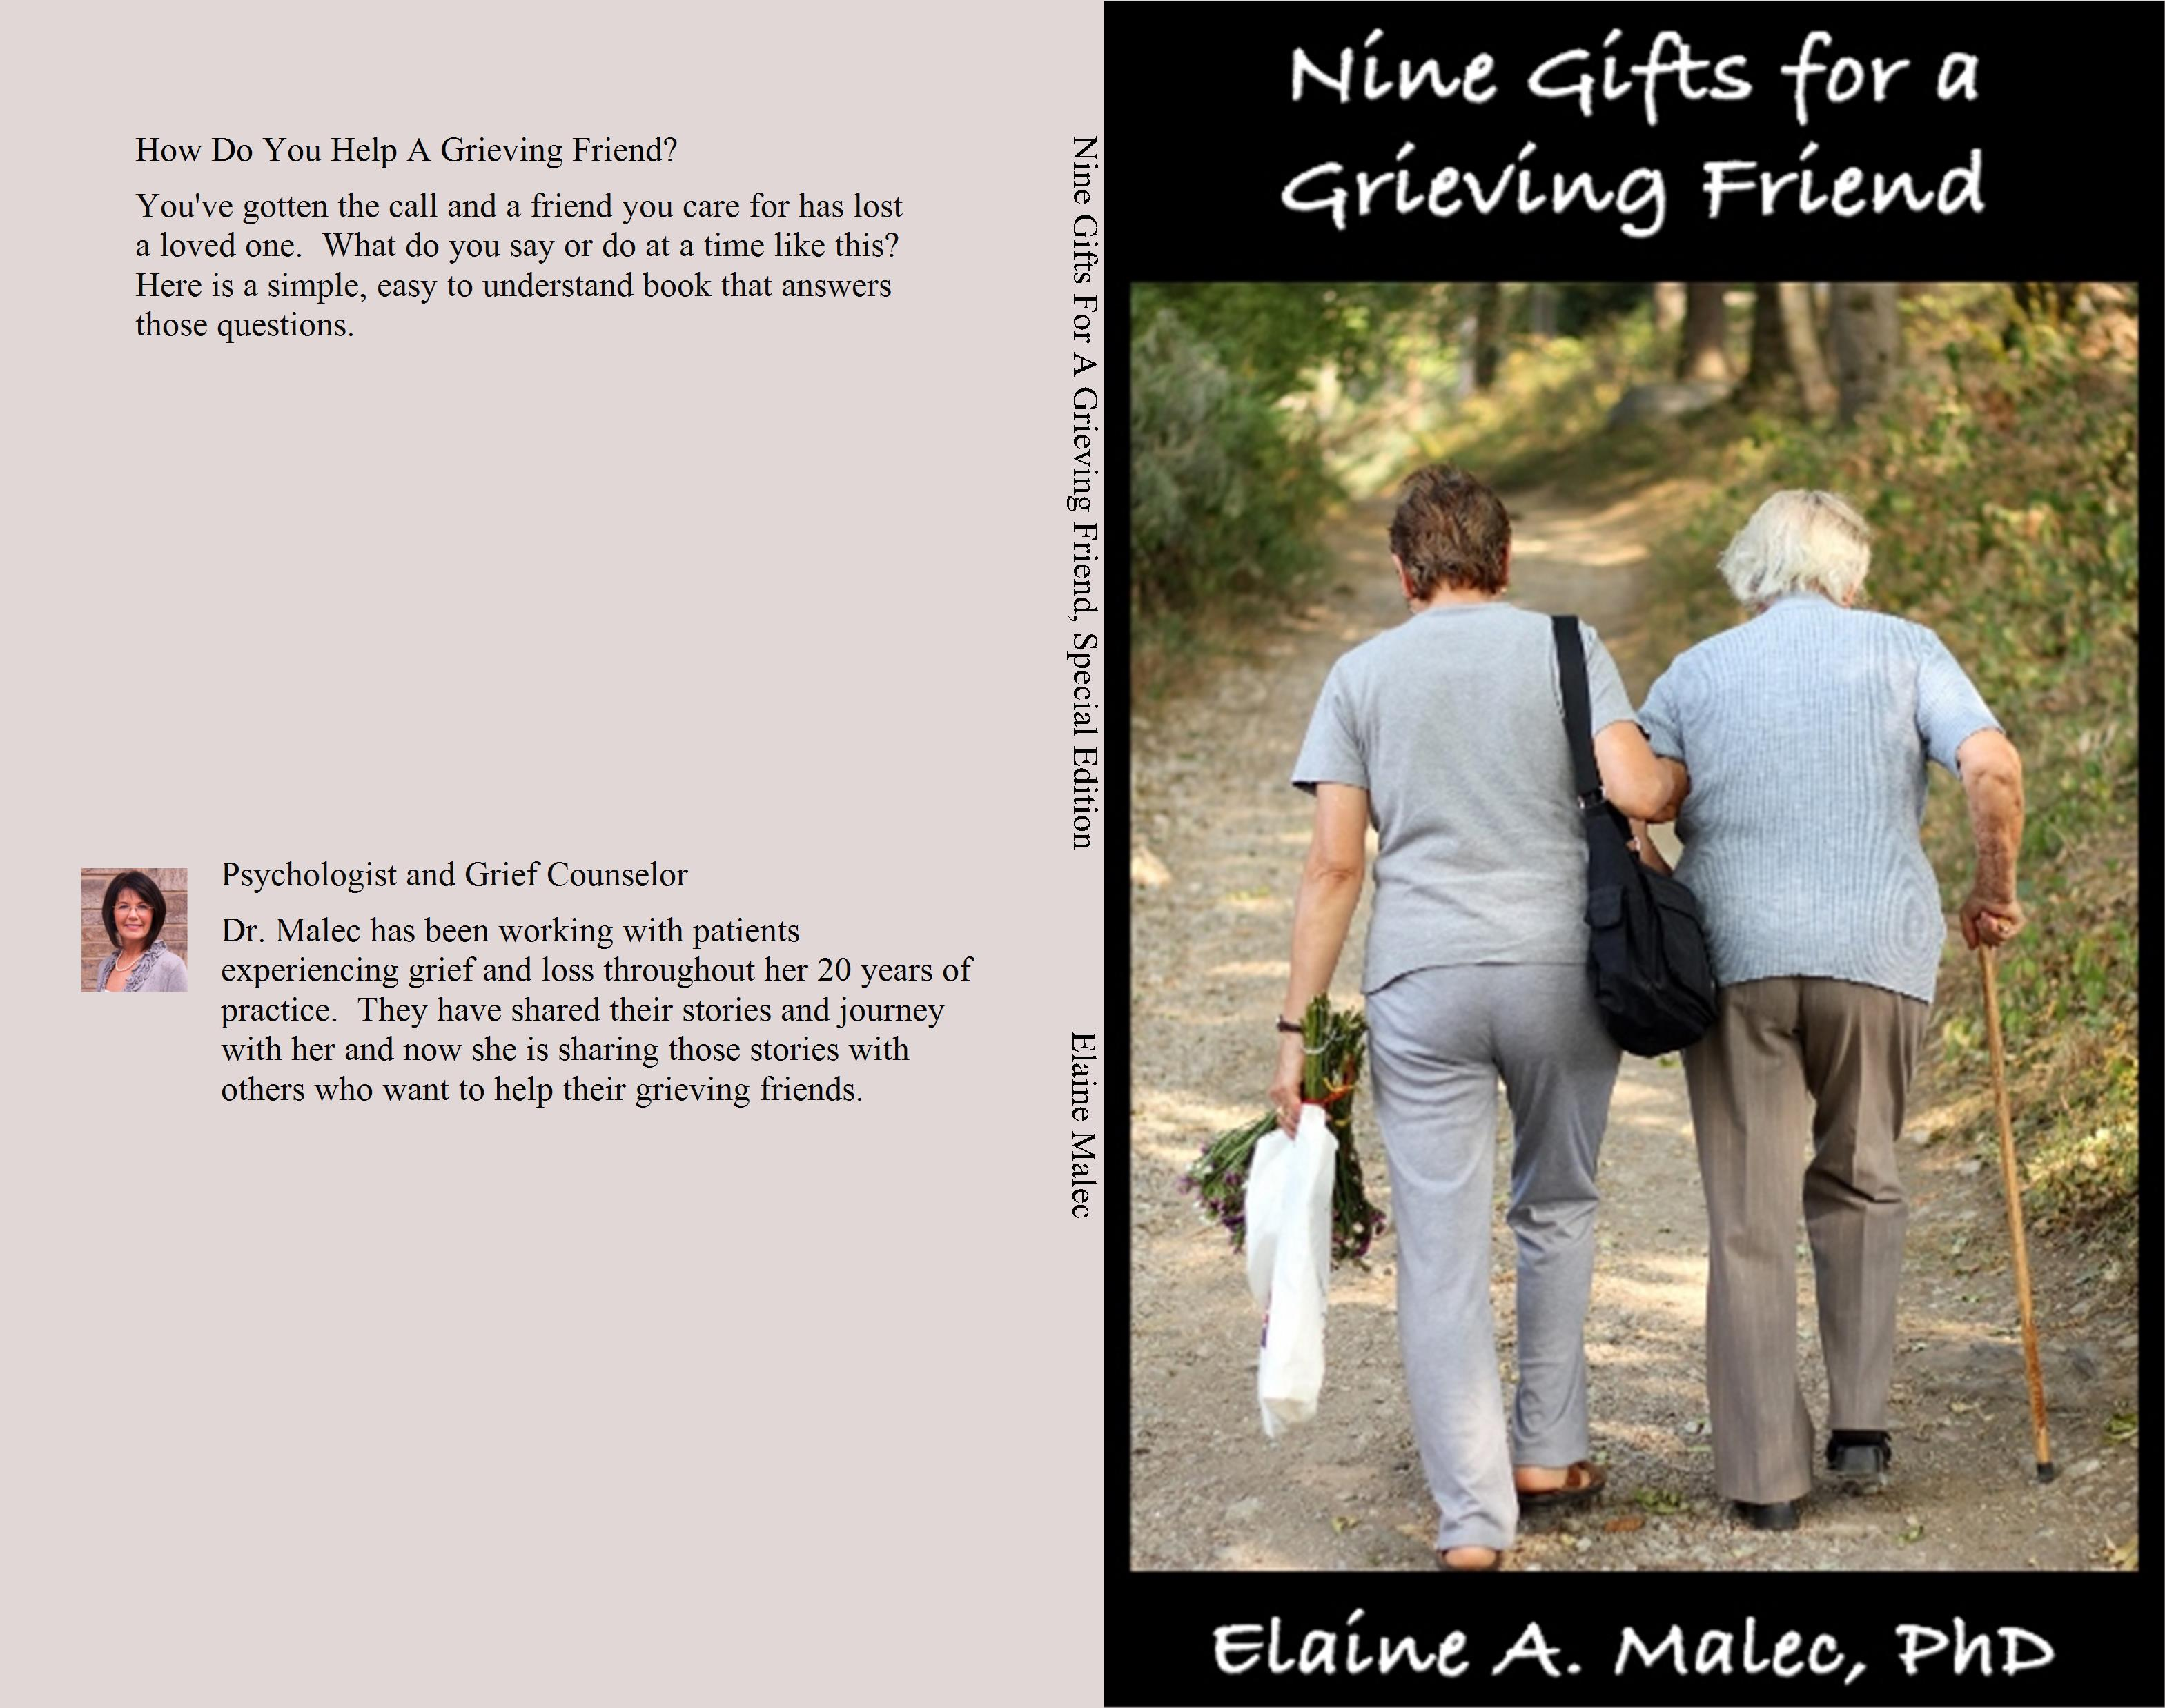 Nine Gifts For A Grieving Friend, Special Edition cover image